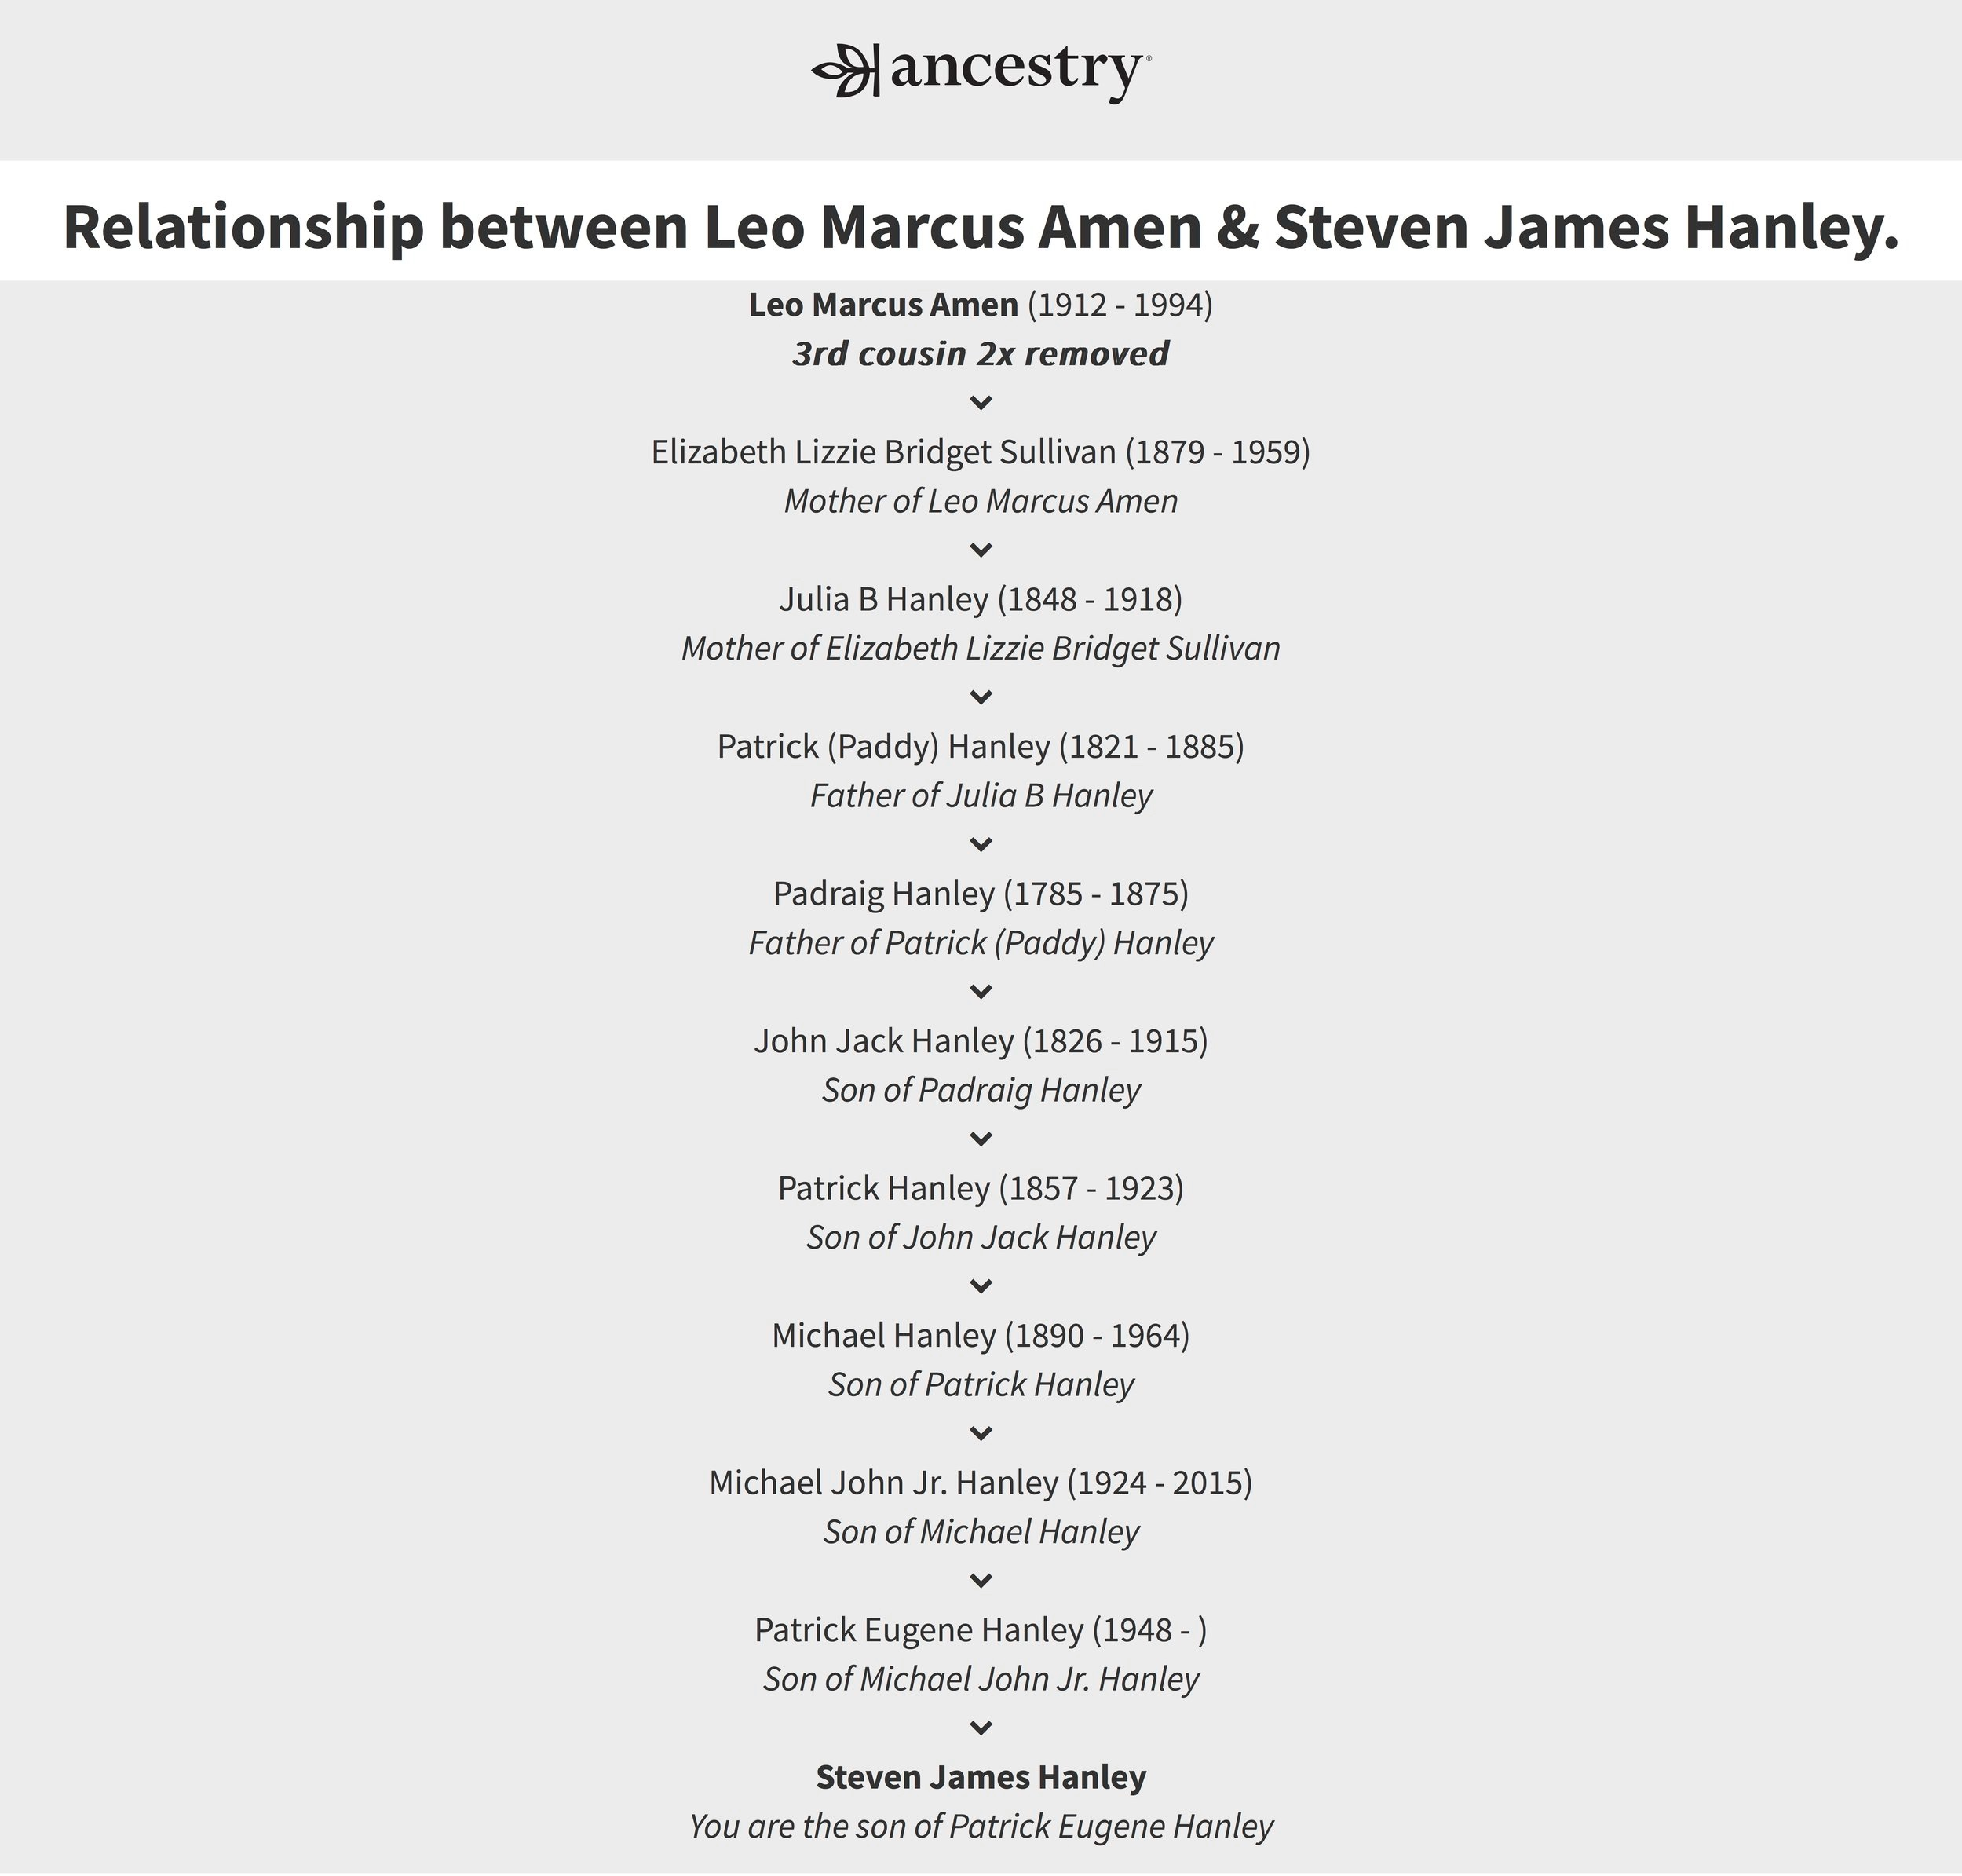 Relationship+between+Leo+Marcus+Amen+%26+Steven+James+Hanley..jpg